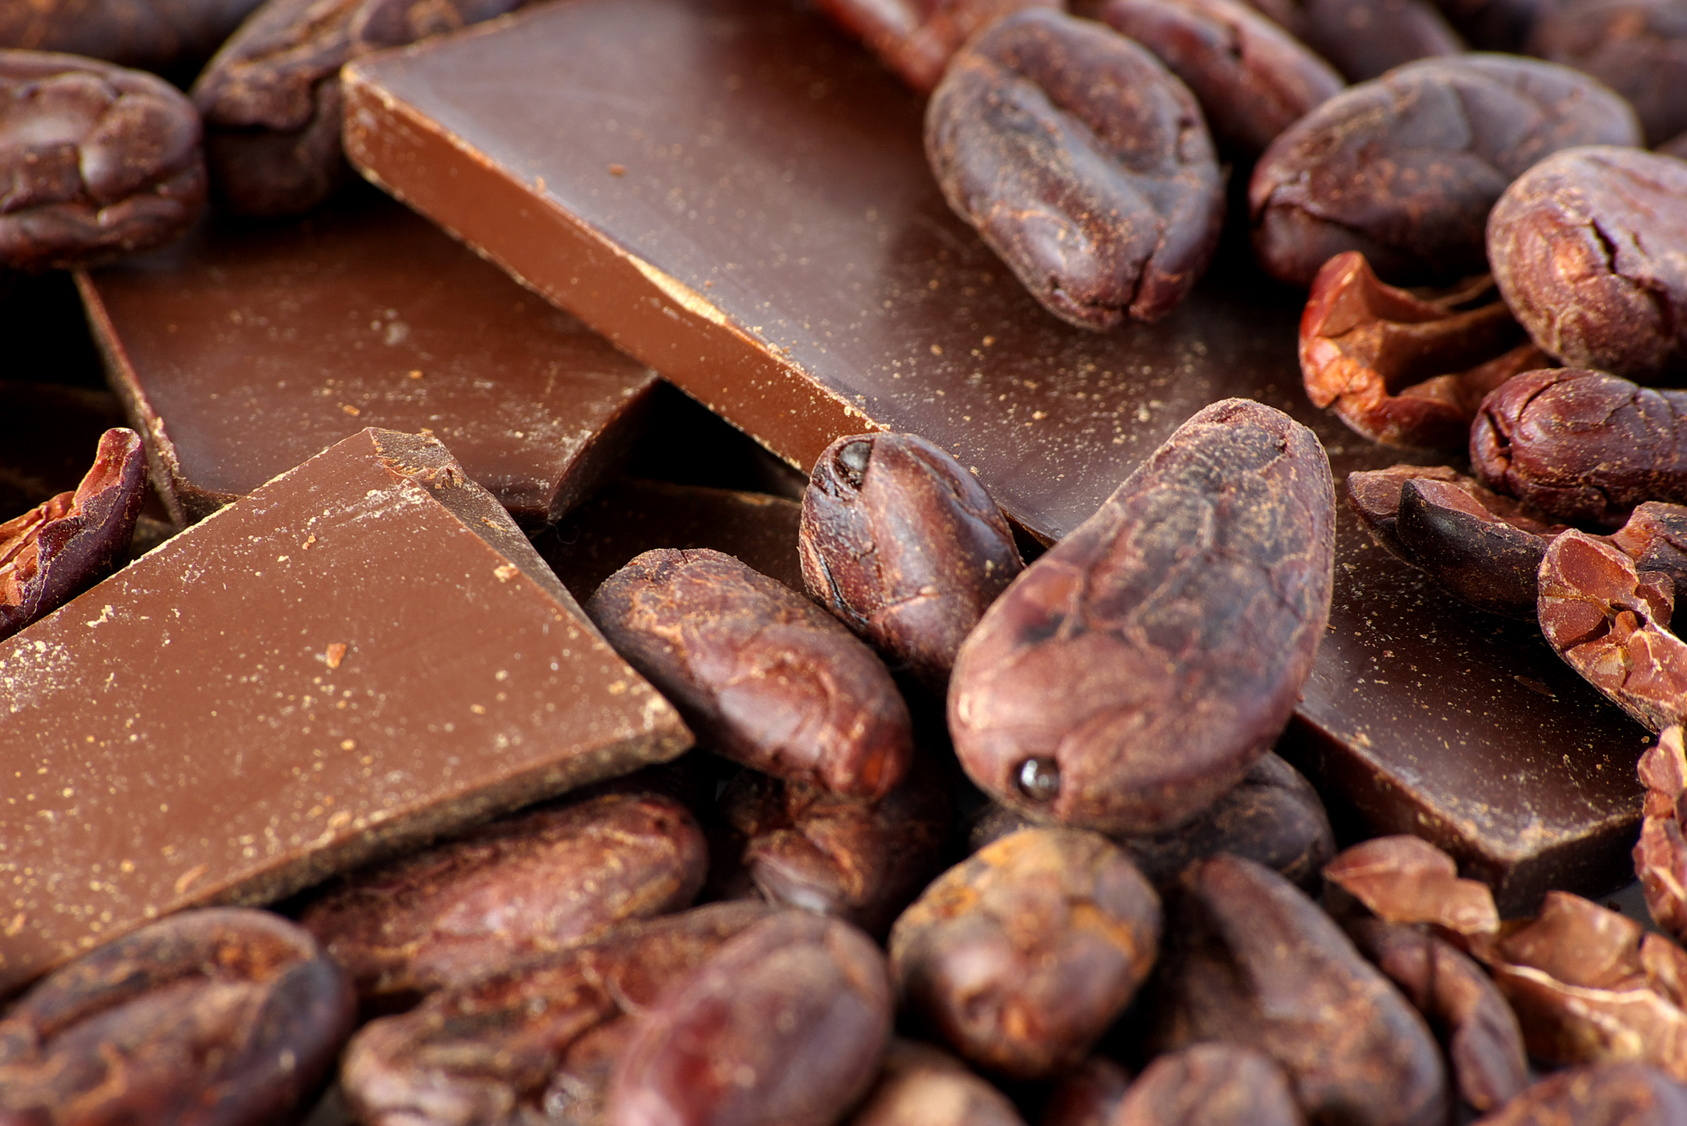 10 Cool and Surprising Uses of Chocolate - Financesonline.com